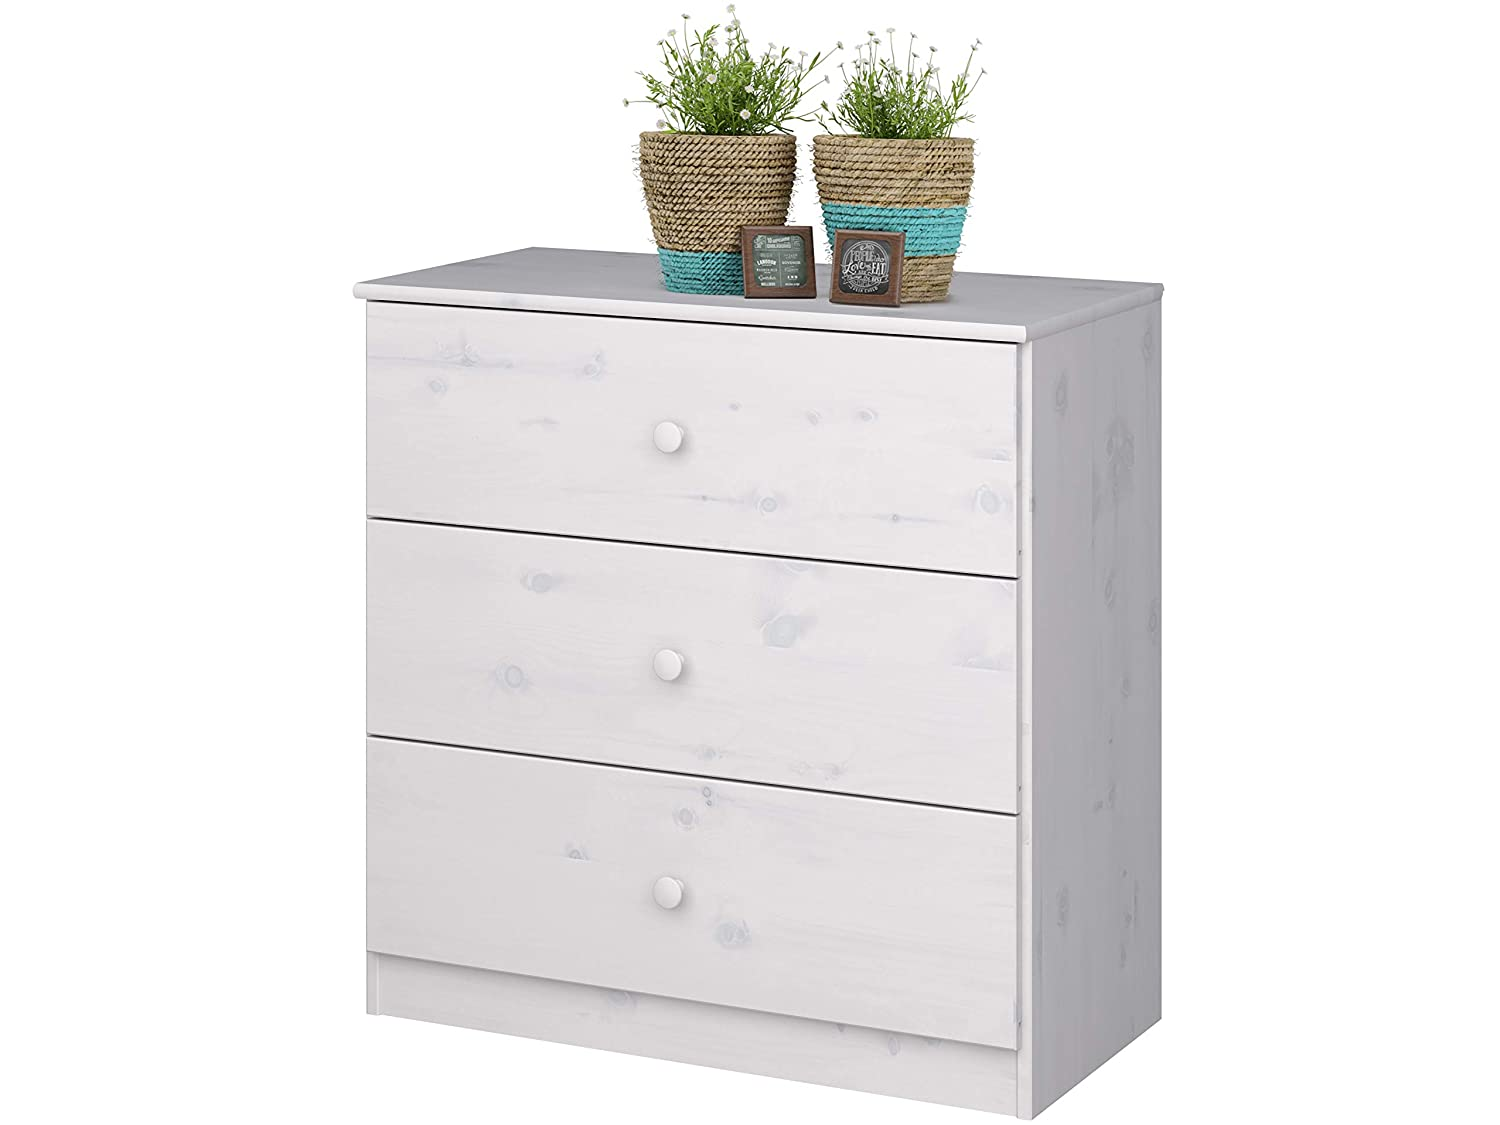 Loft KIDDY Chest of Drawer For Kid 3 Drawers Solid Pine wood White Wash Loft24